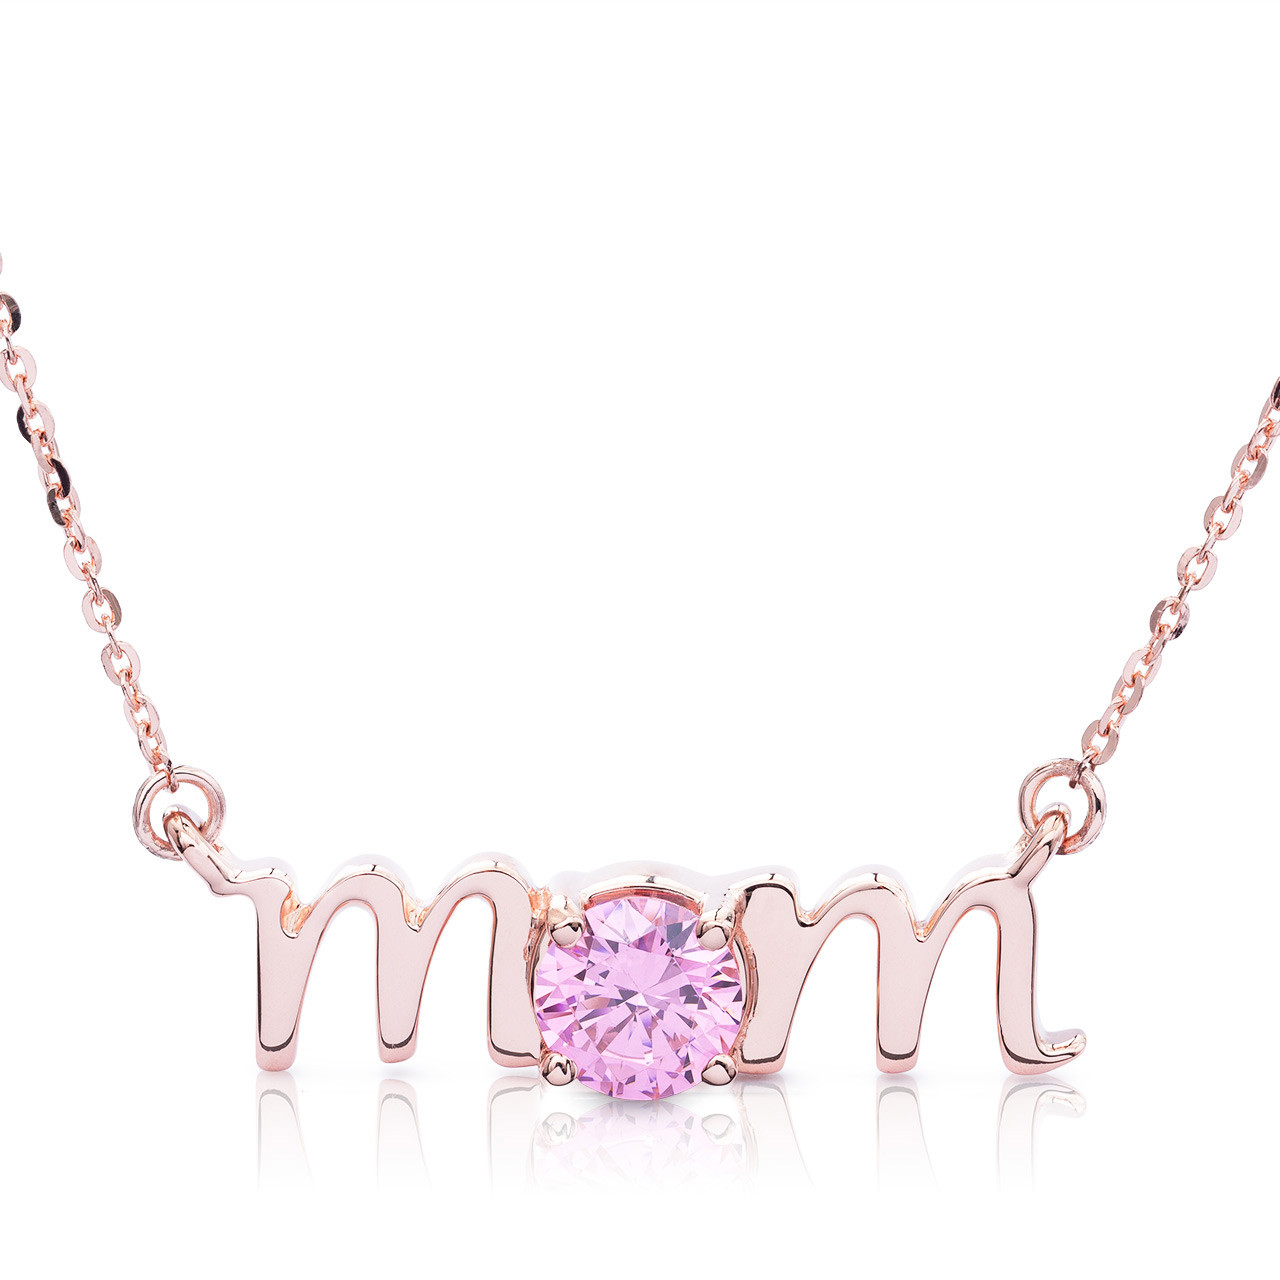 c2054b93c 14k Rose Gold Lowercase Mom Birthstone Statement Necklace - Shyne Jewelers